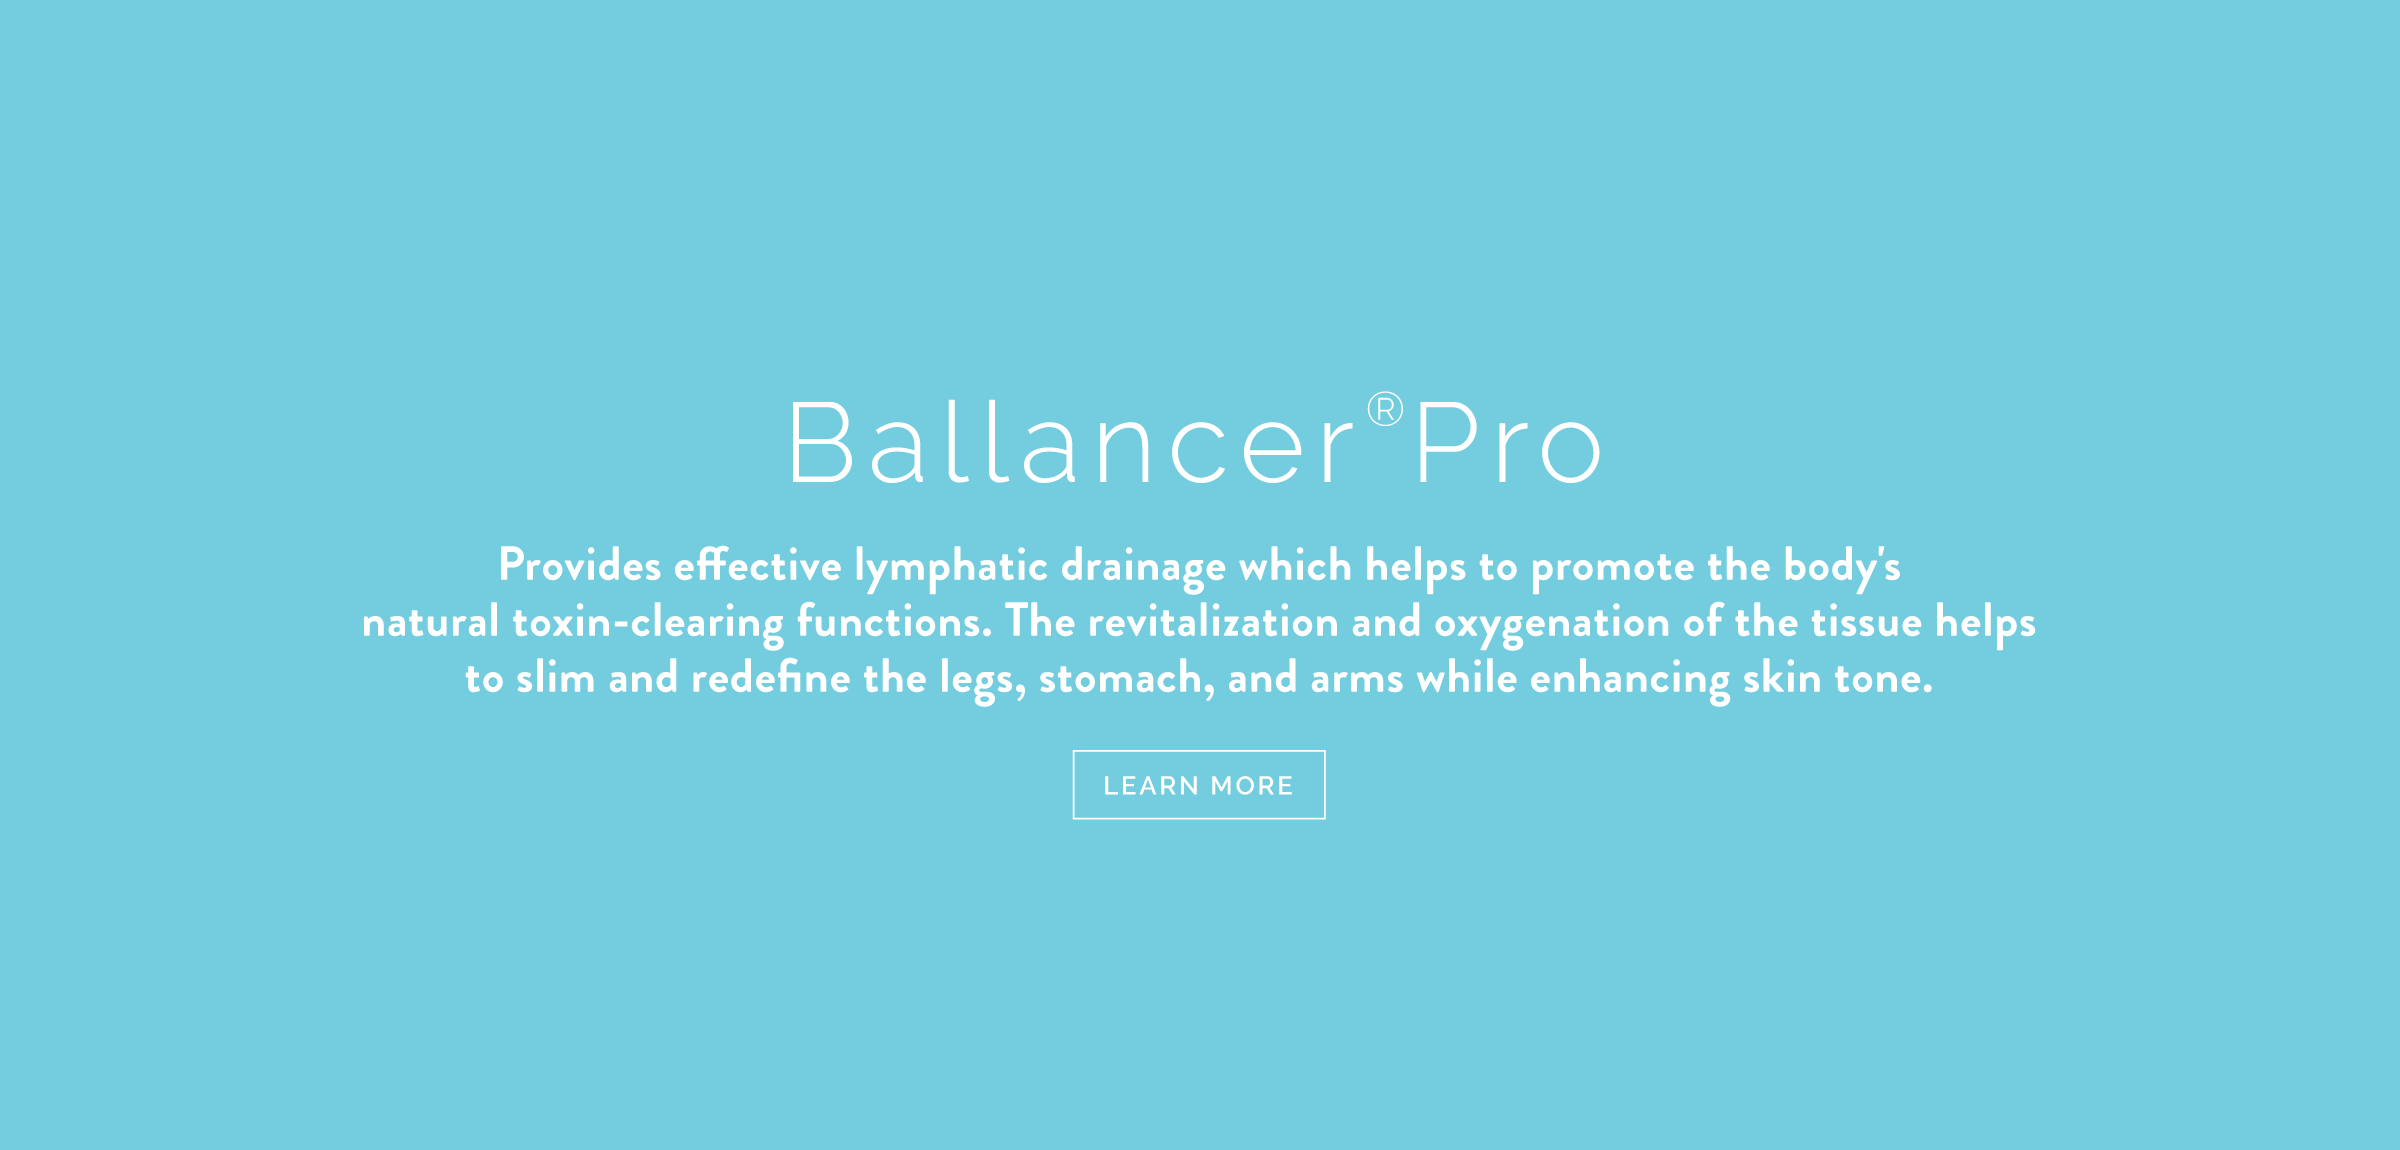 tonic-slider-template-2400x1150-ballancerpro.png